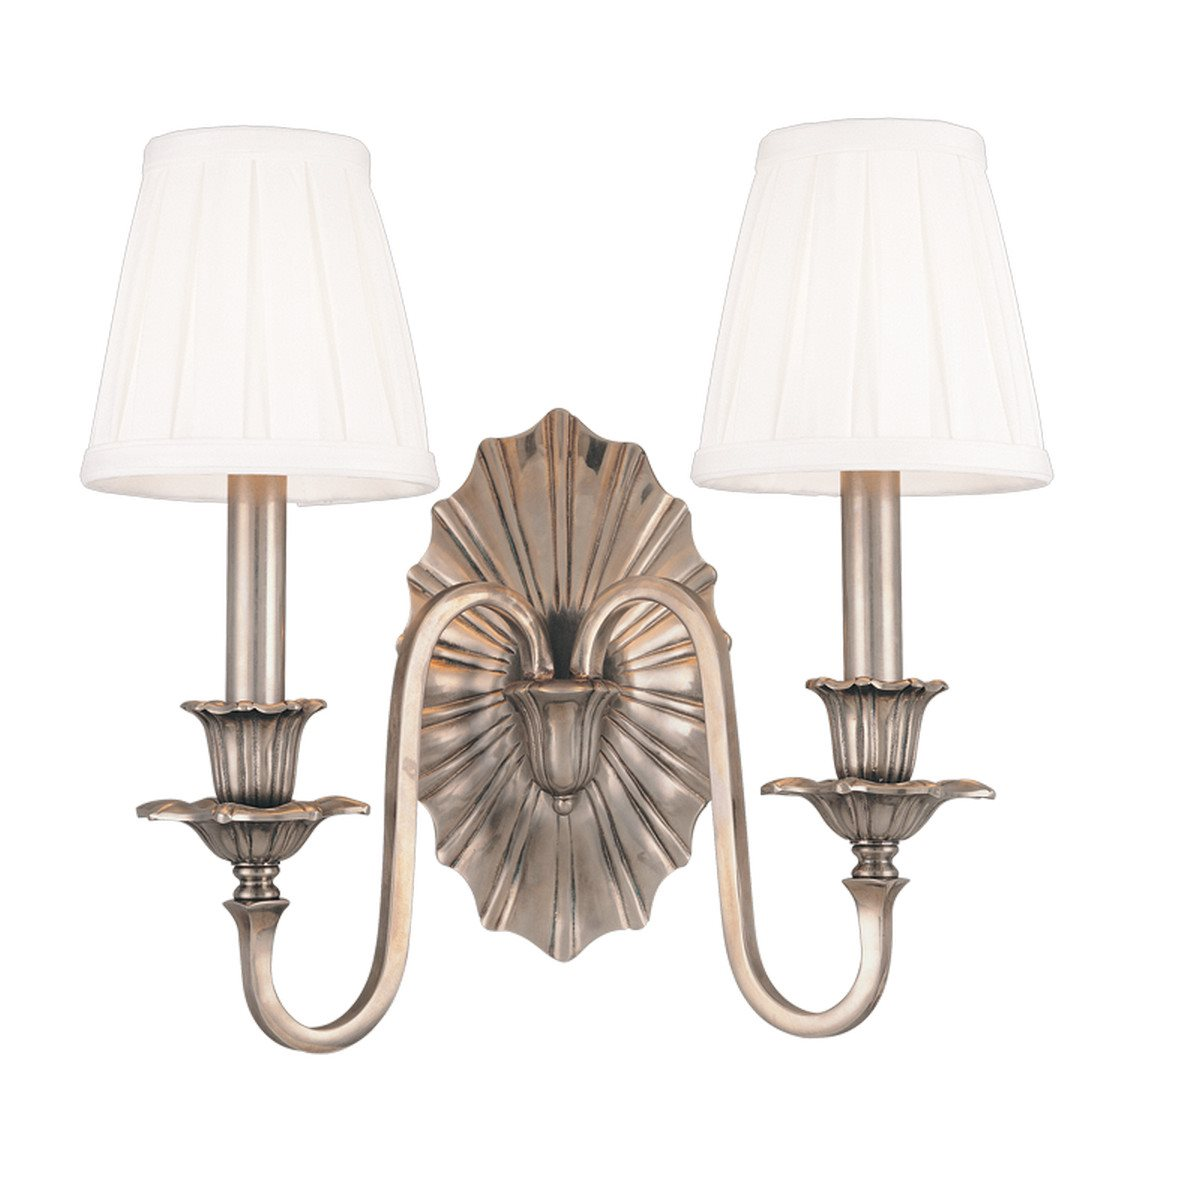 Where Is Hudson Valley Lighting Made: Hudson Valley Lighting 332 Empire Traditional Wall Sconce